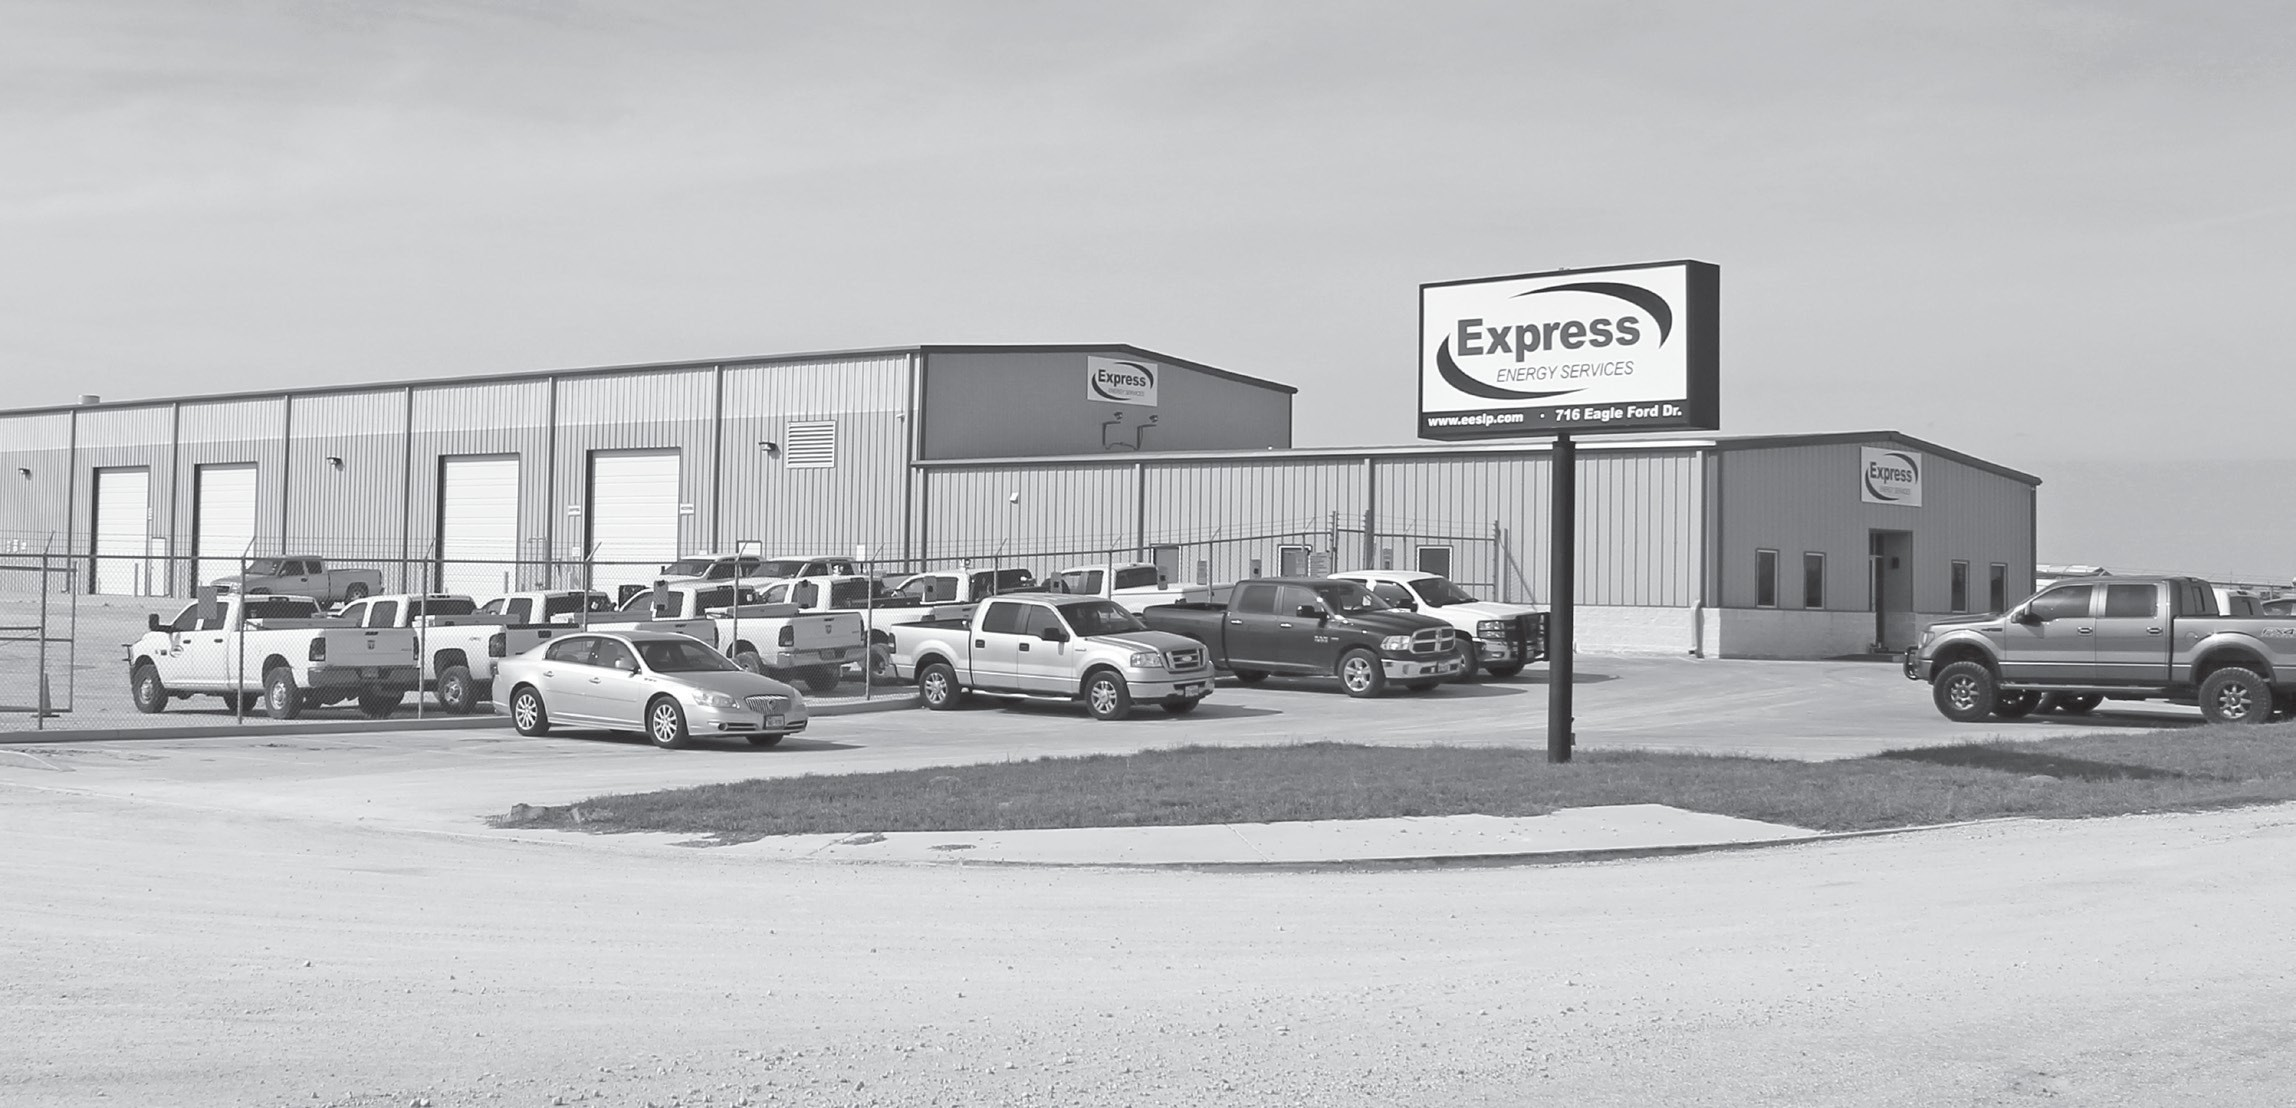 Express Energy Services facility located at 716 Eagle Ford Drive